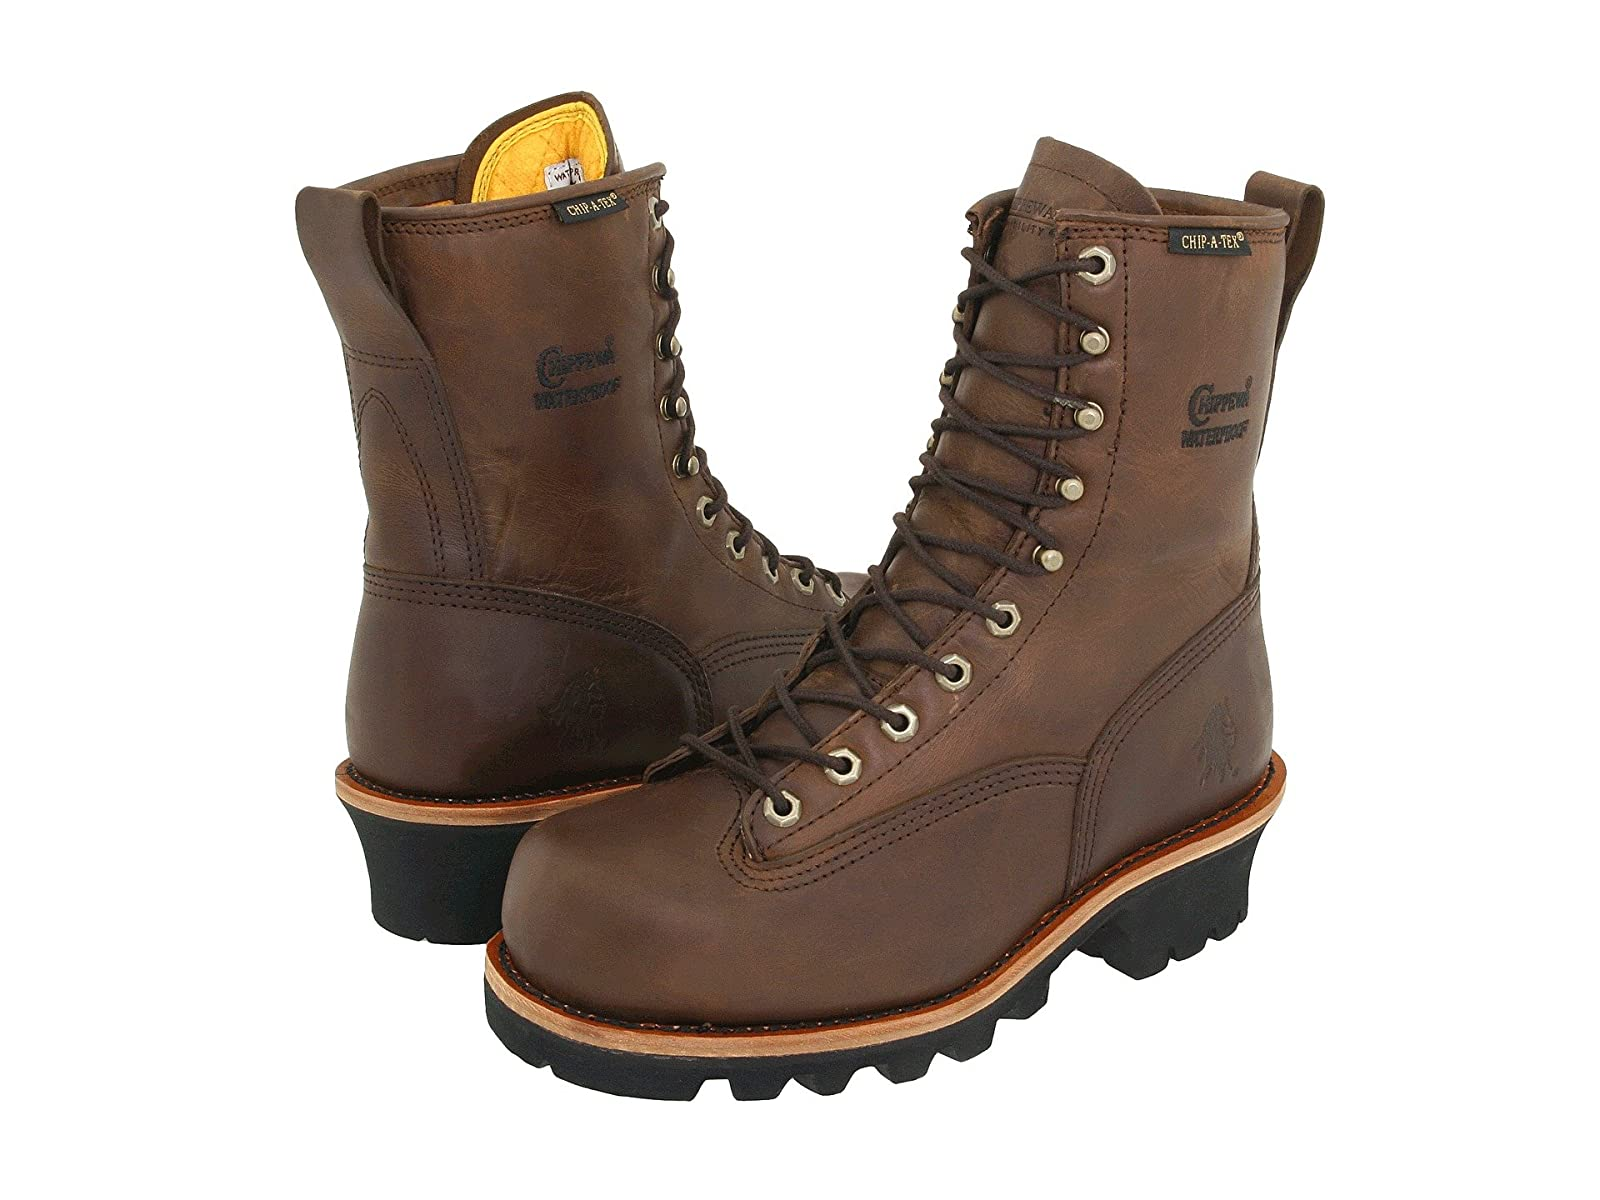 "Chippewa 8"" Bay Toe Apache Insulated Waterproof Steel Toe Bay Logger 5ffe57"